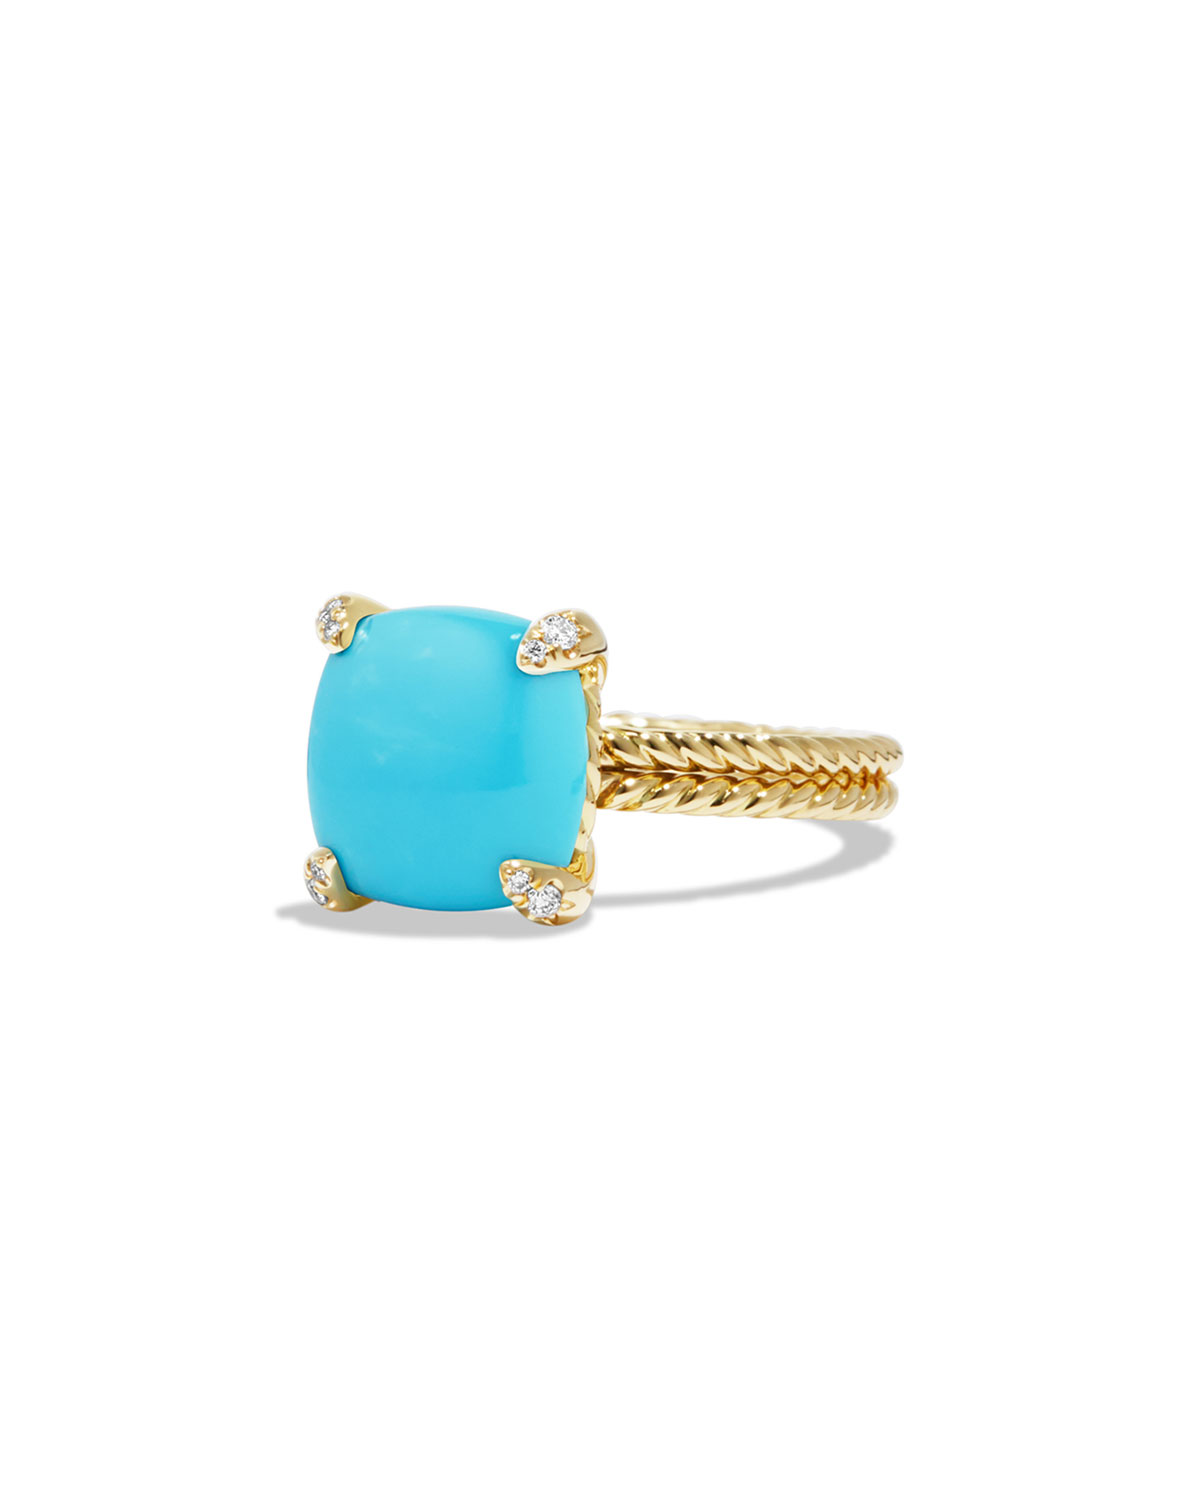 David Yurman Châtelaine 18k Gold 11mm Turquoise Ring w/ Diamonds, Size 5